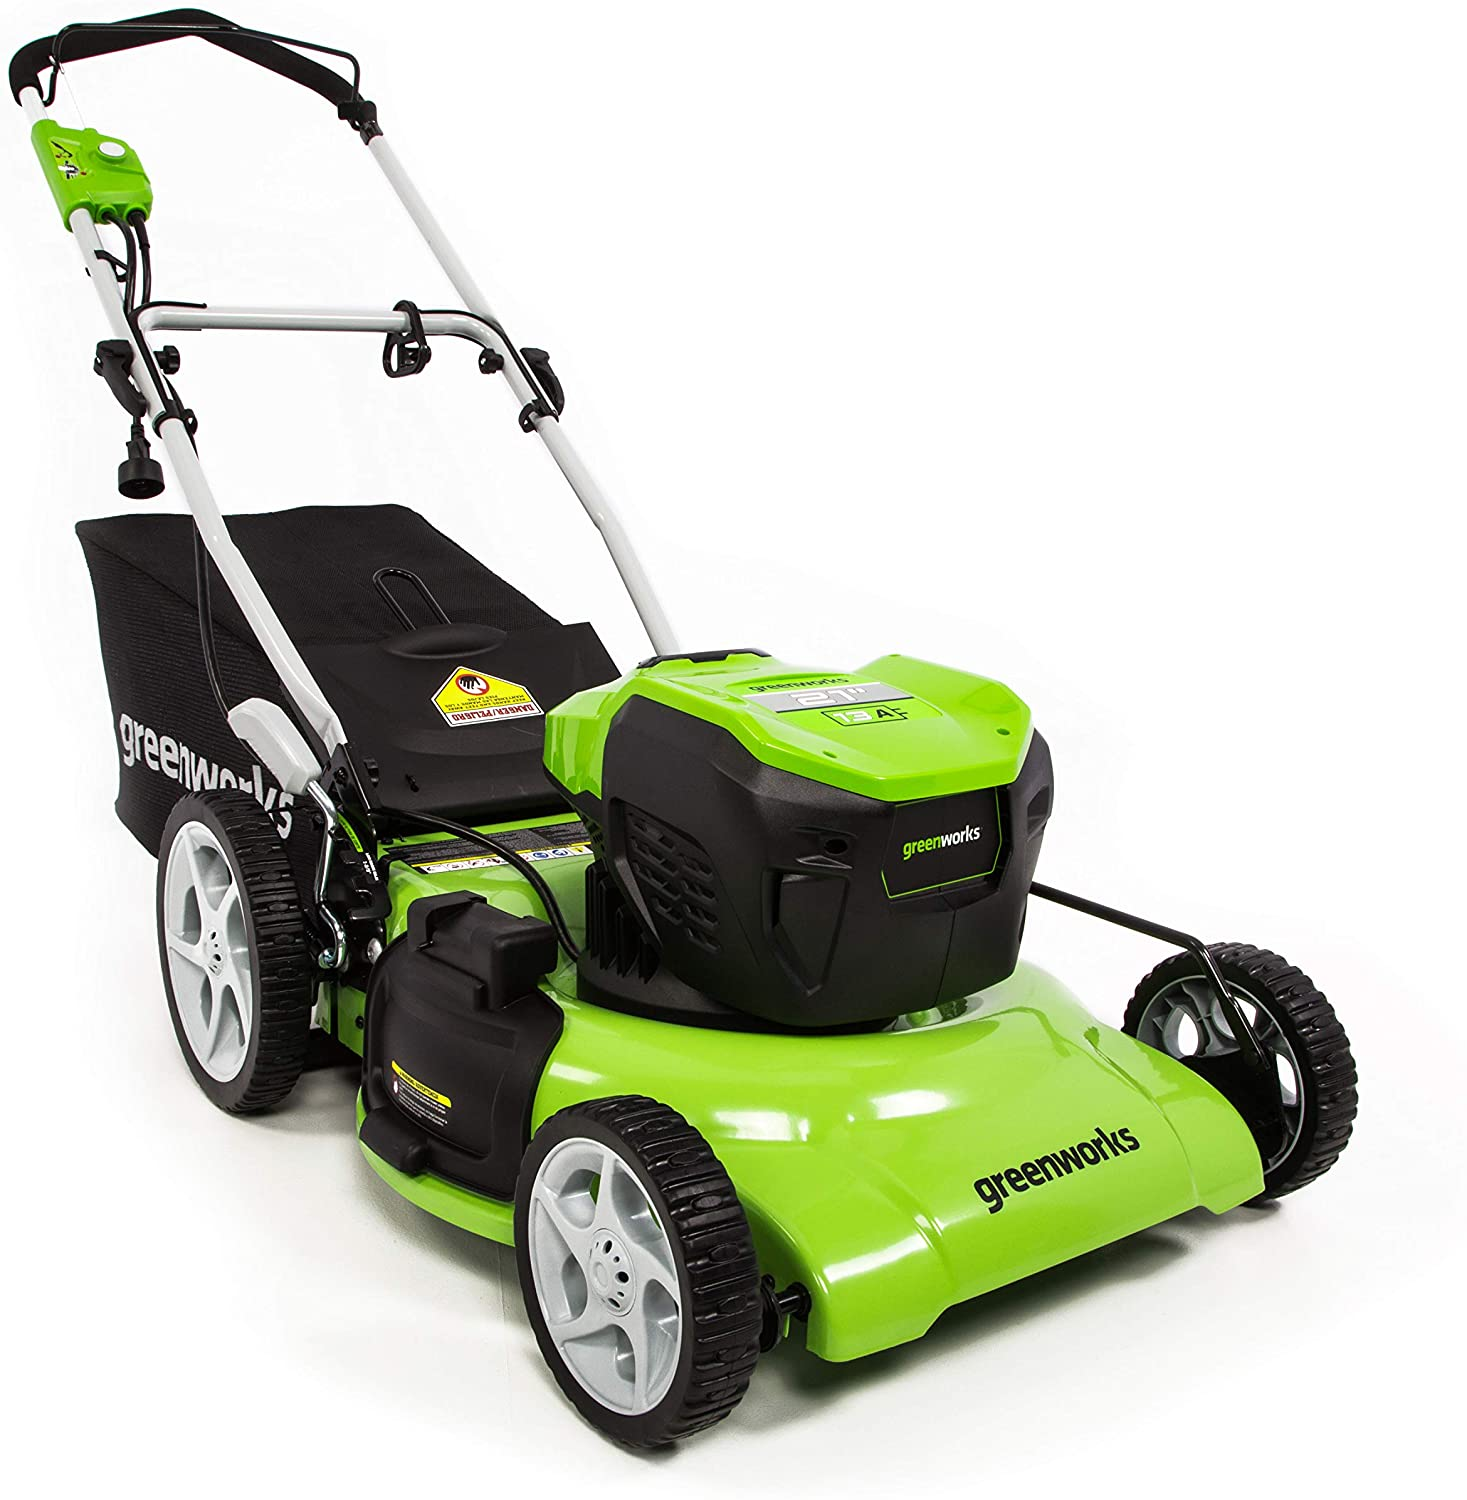 Greenworks MO13B00 Corded Electric Lawn Mower